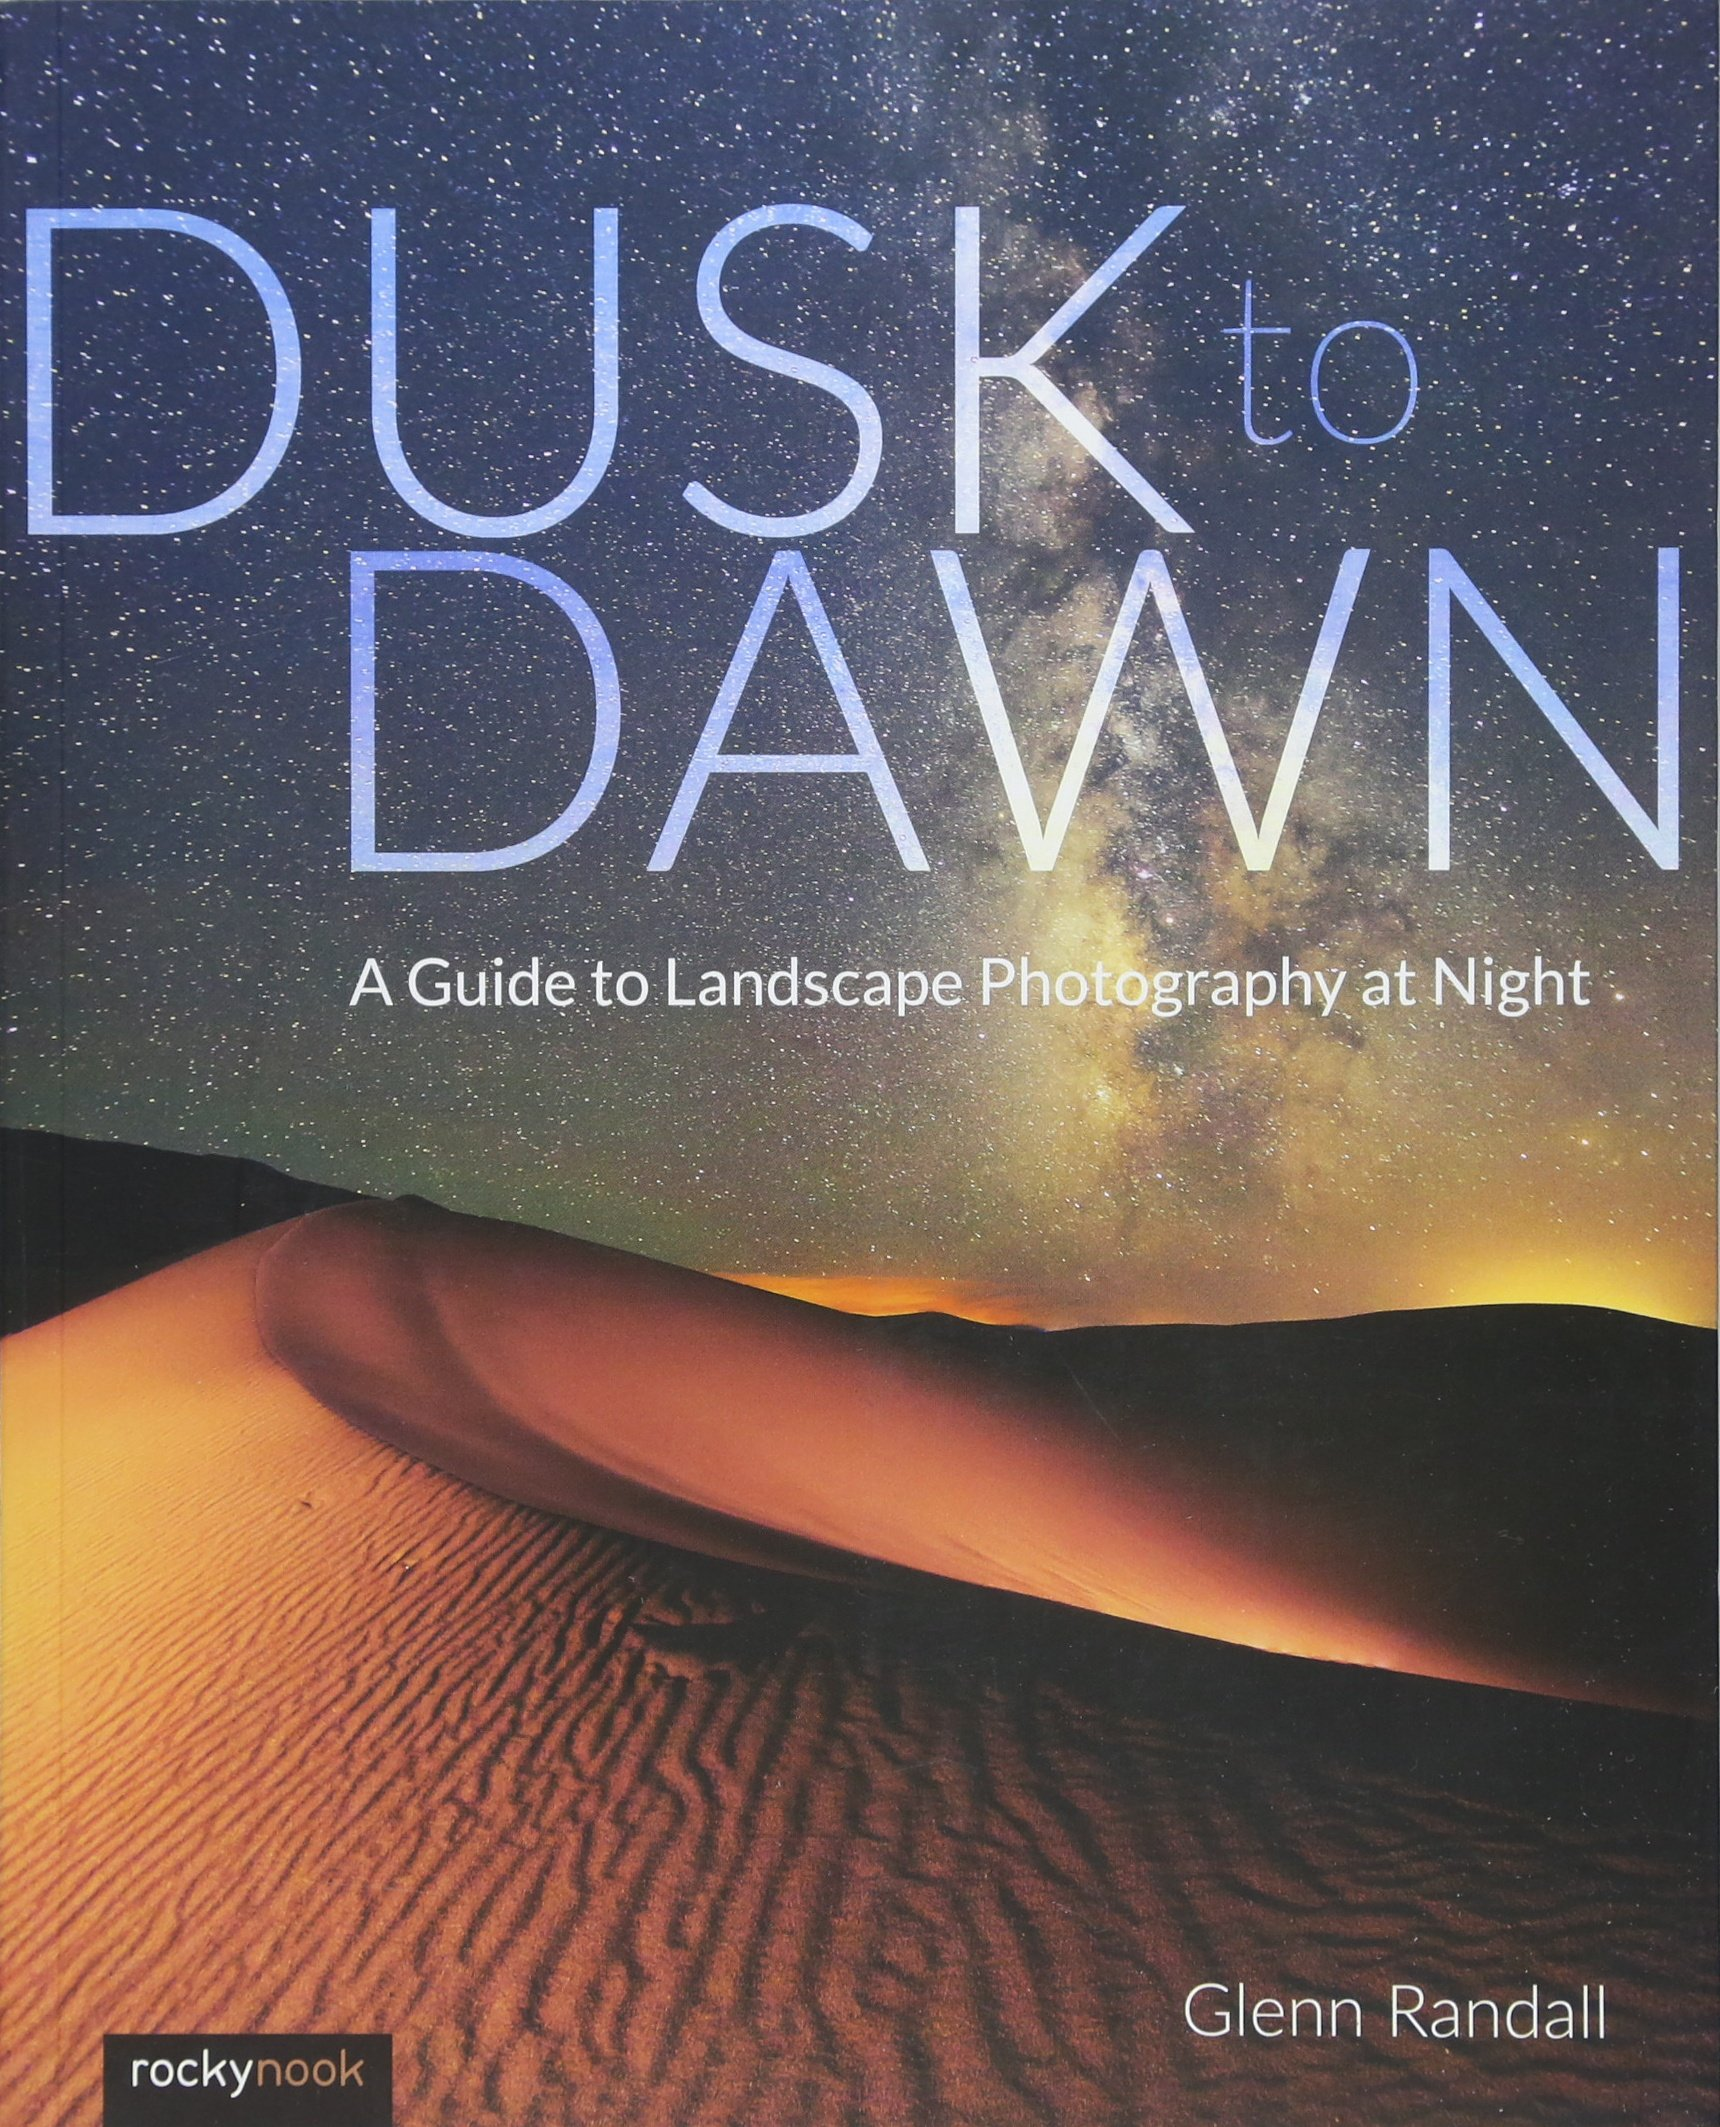 Dusk to Dawn: A Guide to Landscape Photography at Night